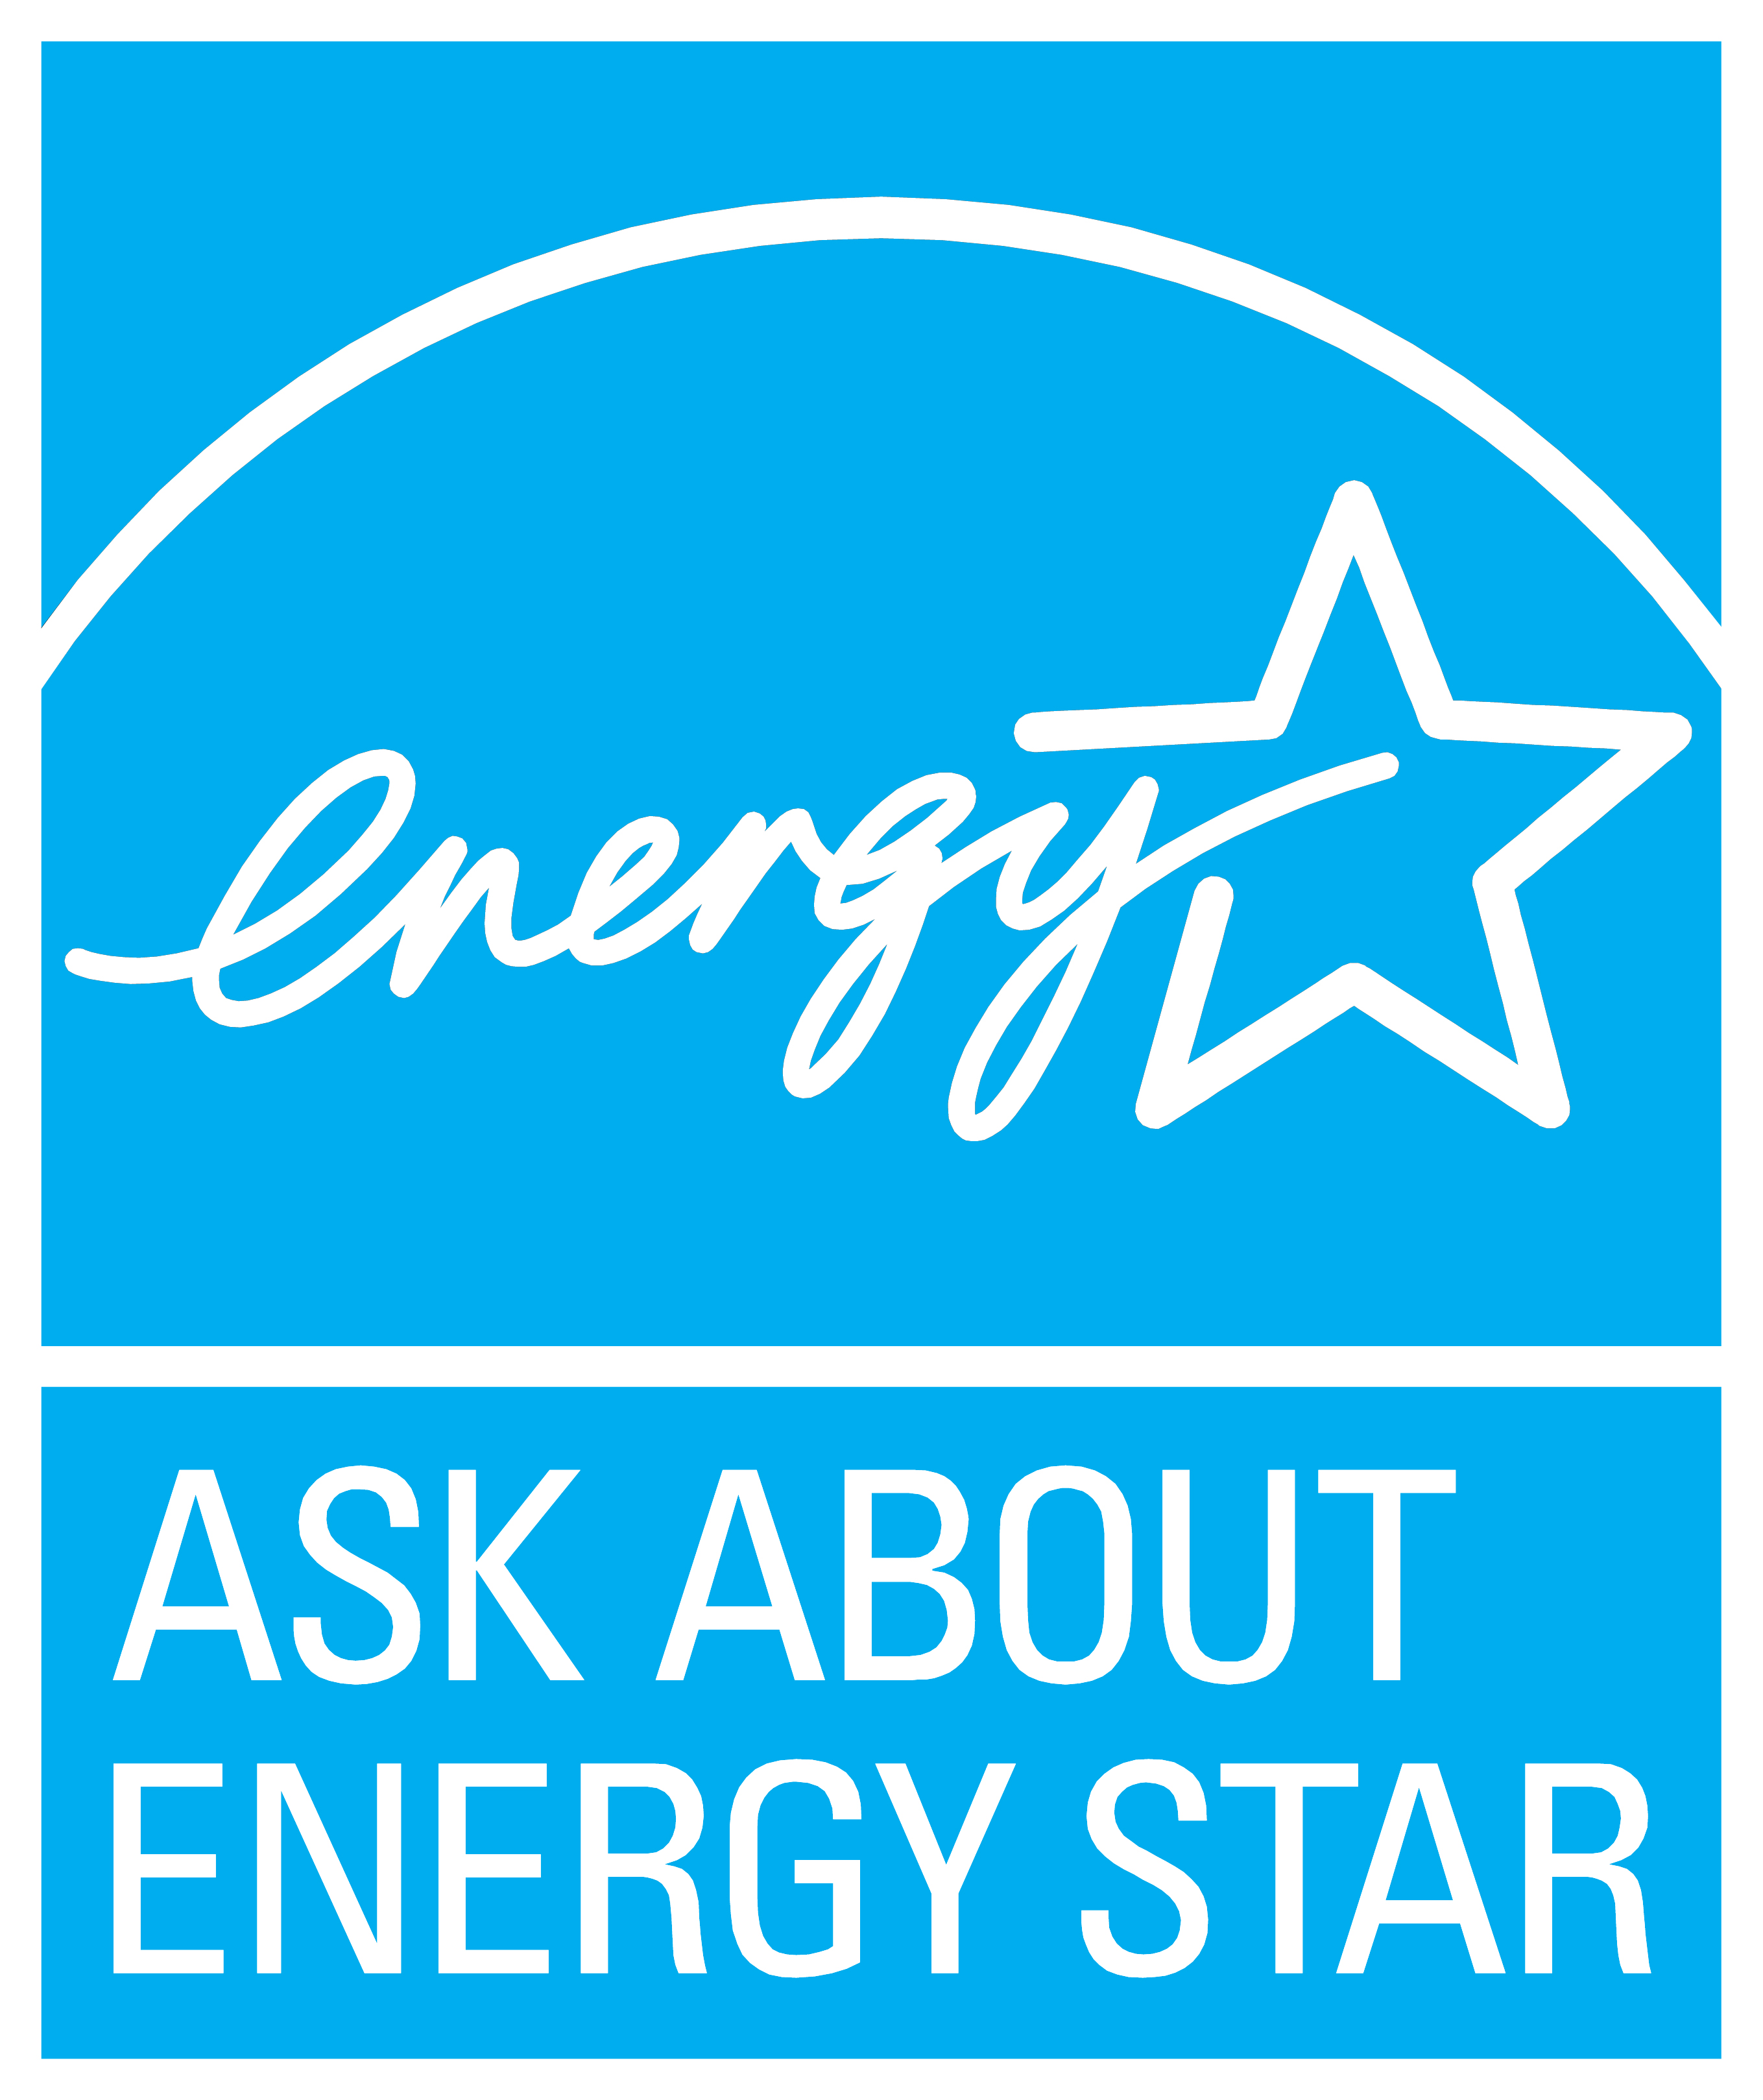 energystar askabout?sfvrsn=153744c0_2 energy efficient gsx16 air conditioner from goodman  at virtualis.co